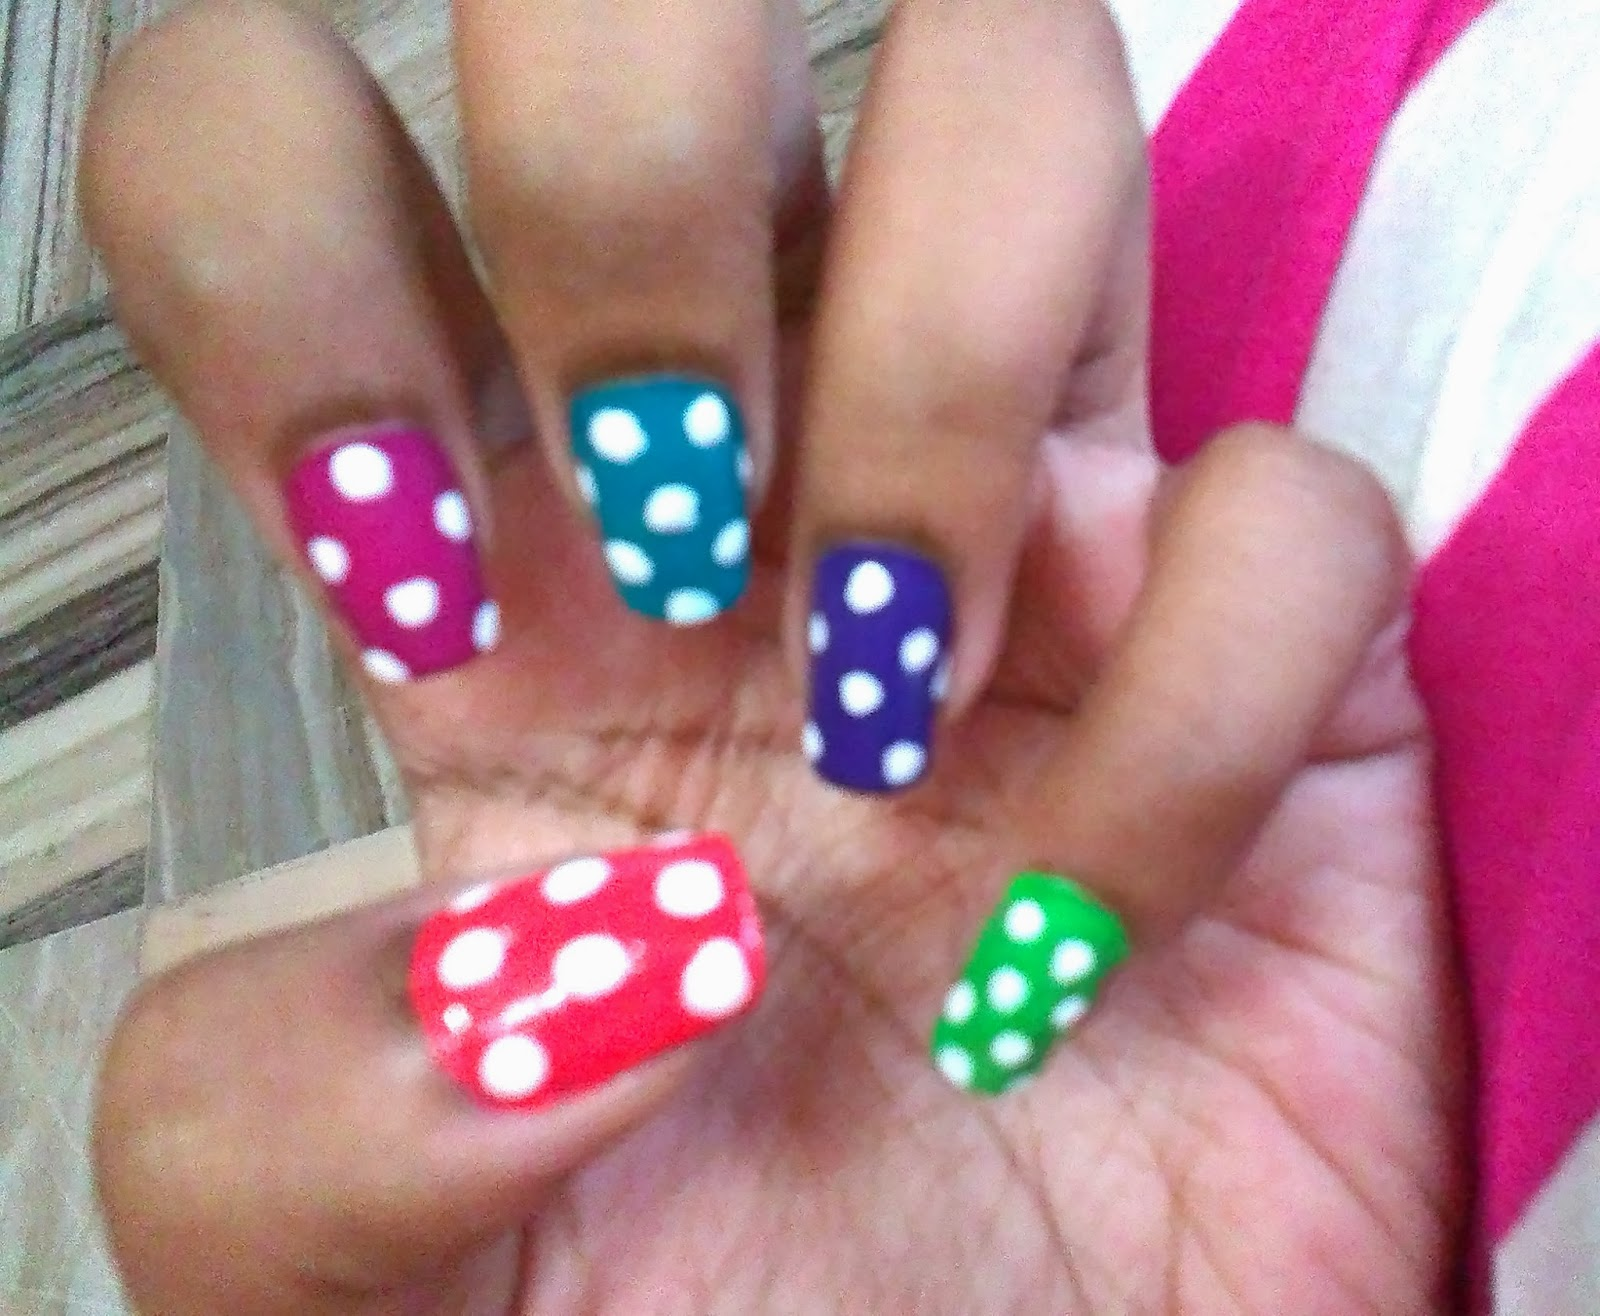 Fashionable n Chic: Funky Nail Art